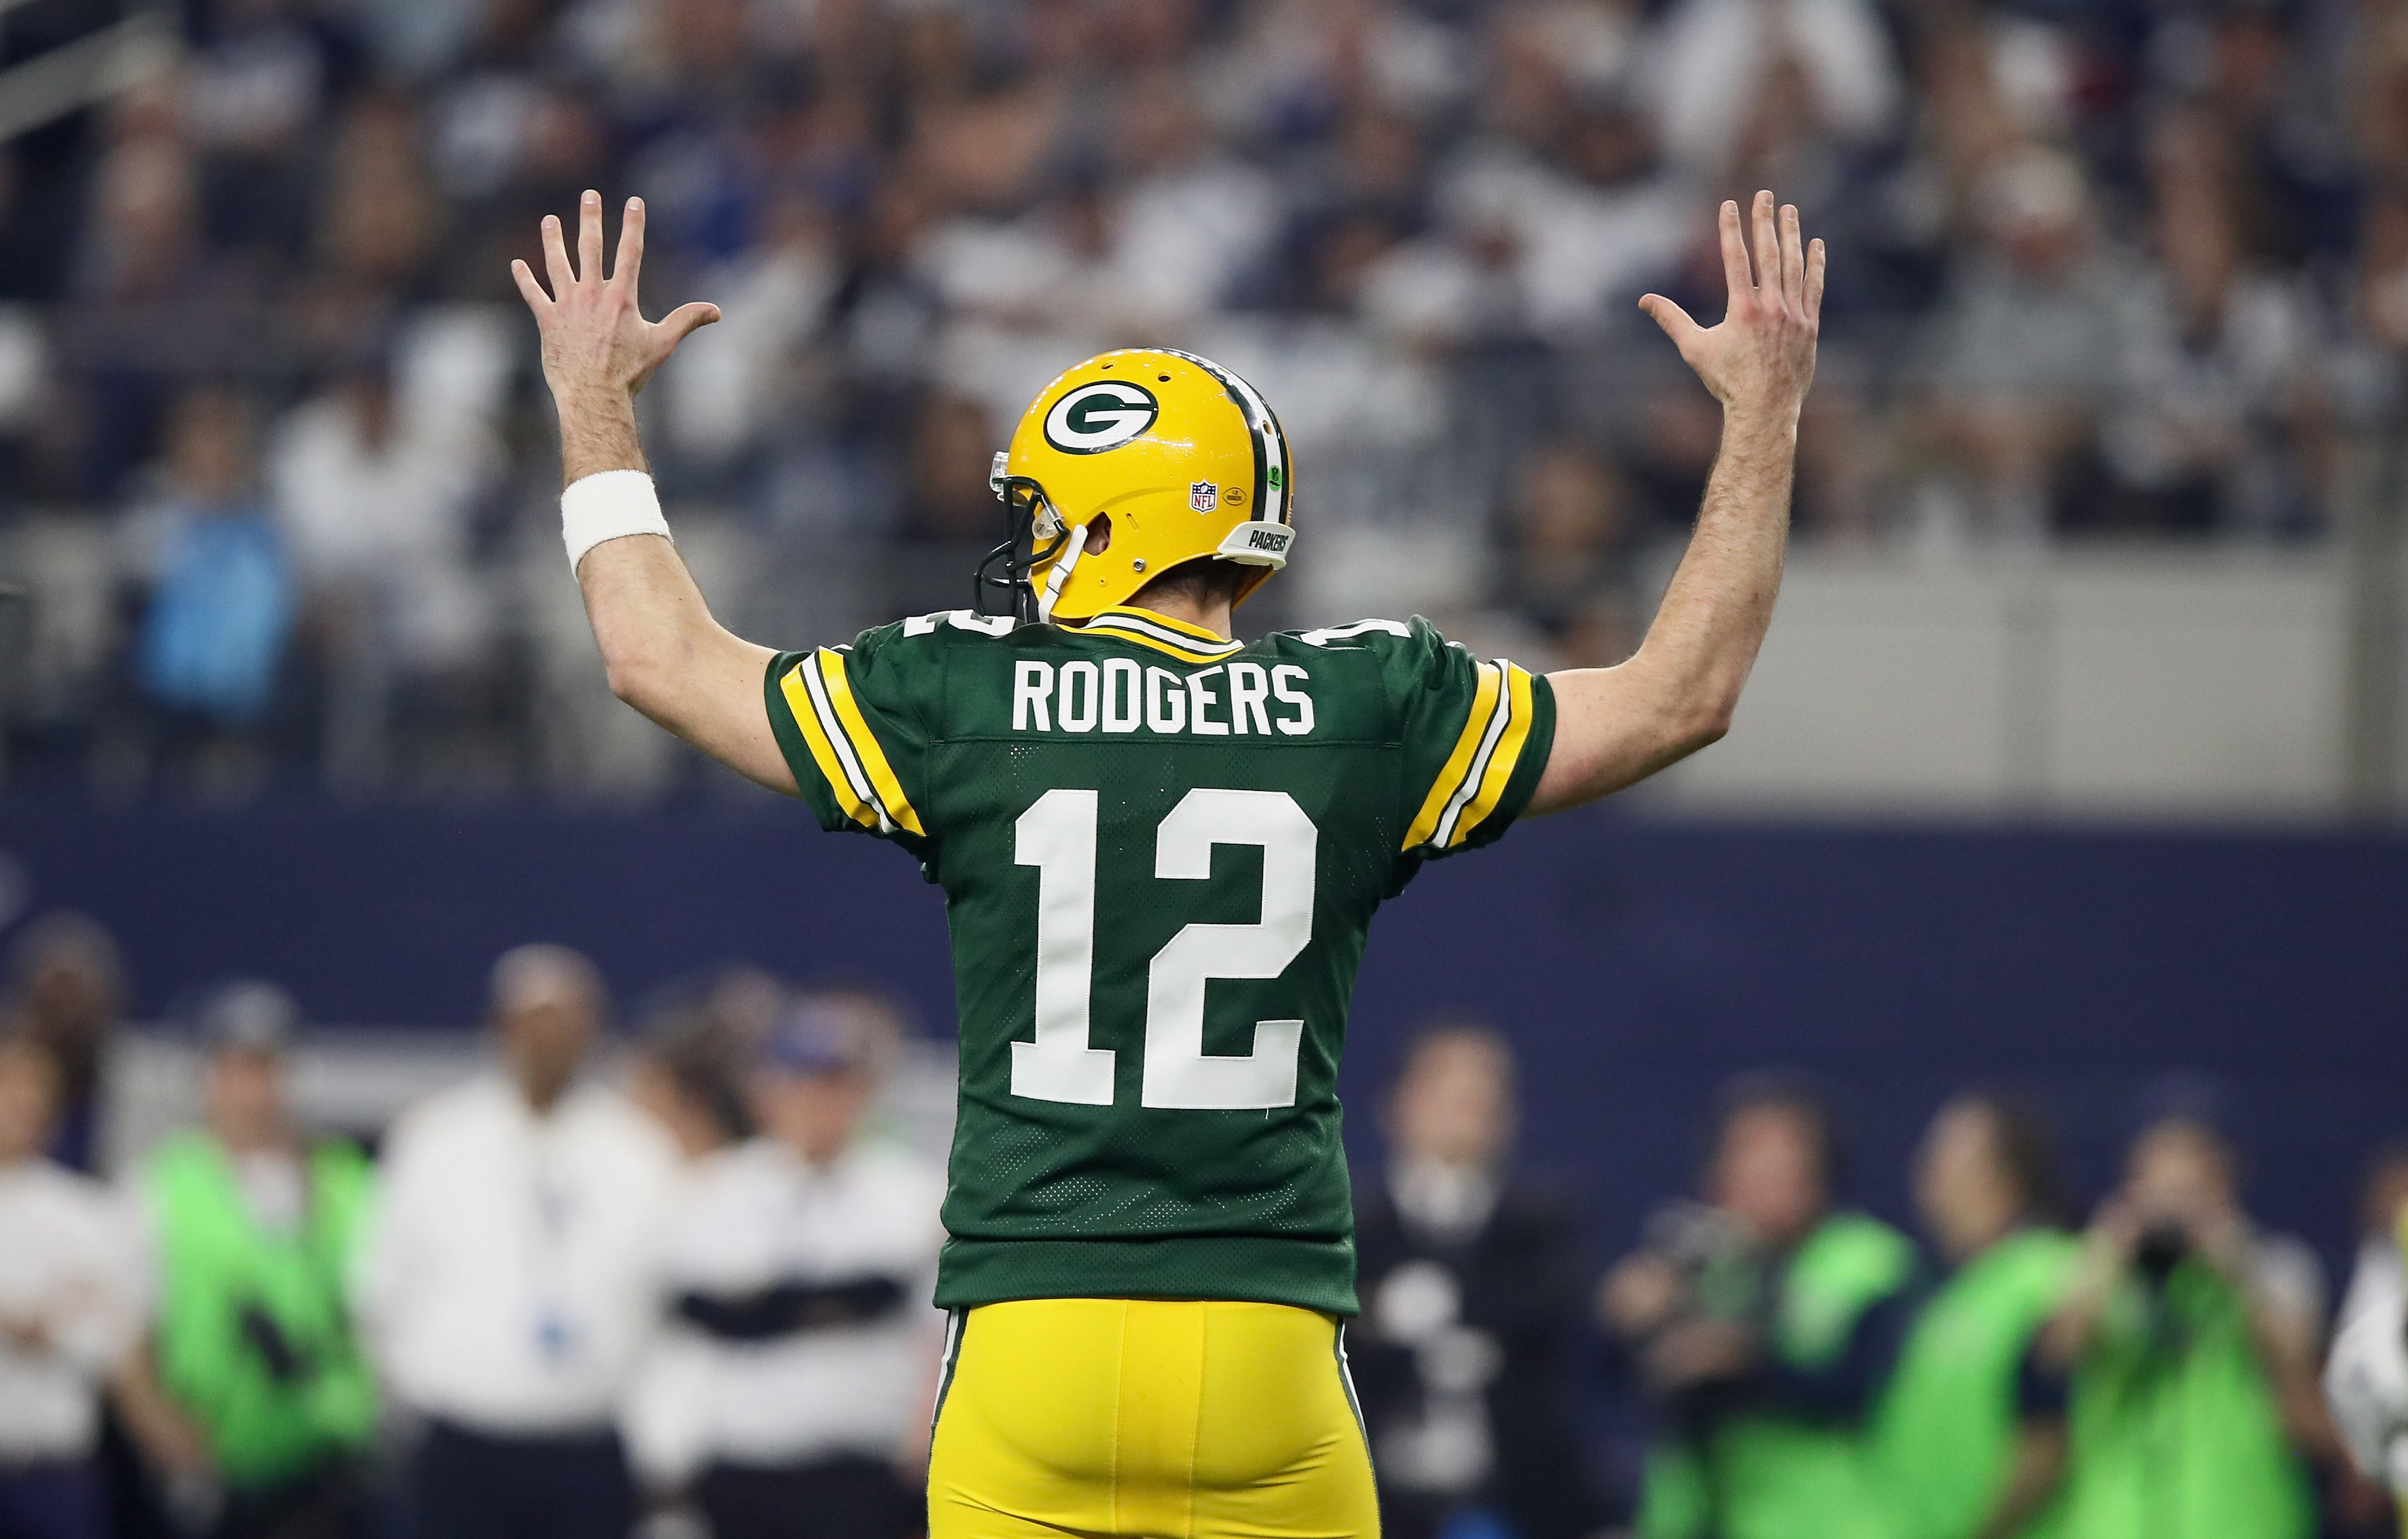 ARLINGTON, TX - JANUARY 15:  Aaron Rodgers #12 of the Green Bay Packers reacts after the Packers scored a touchdown against the Dallas Cowboys during the NFC Divisional Playoff Game at AT&T Stadium on January 15, 2017 in Arlington, Texas.  (Photo by Ezra Shaw/Getty Images)